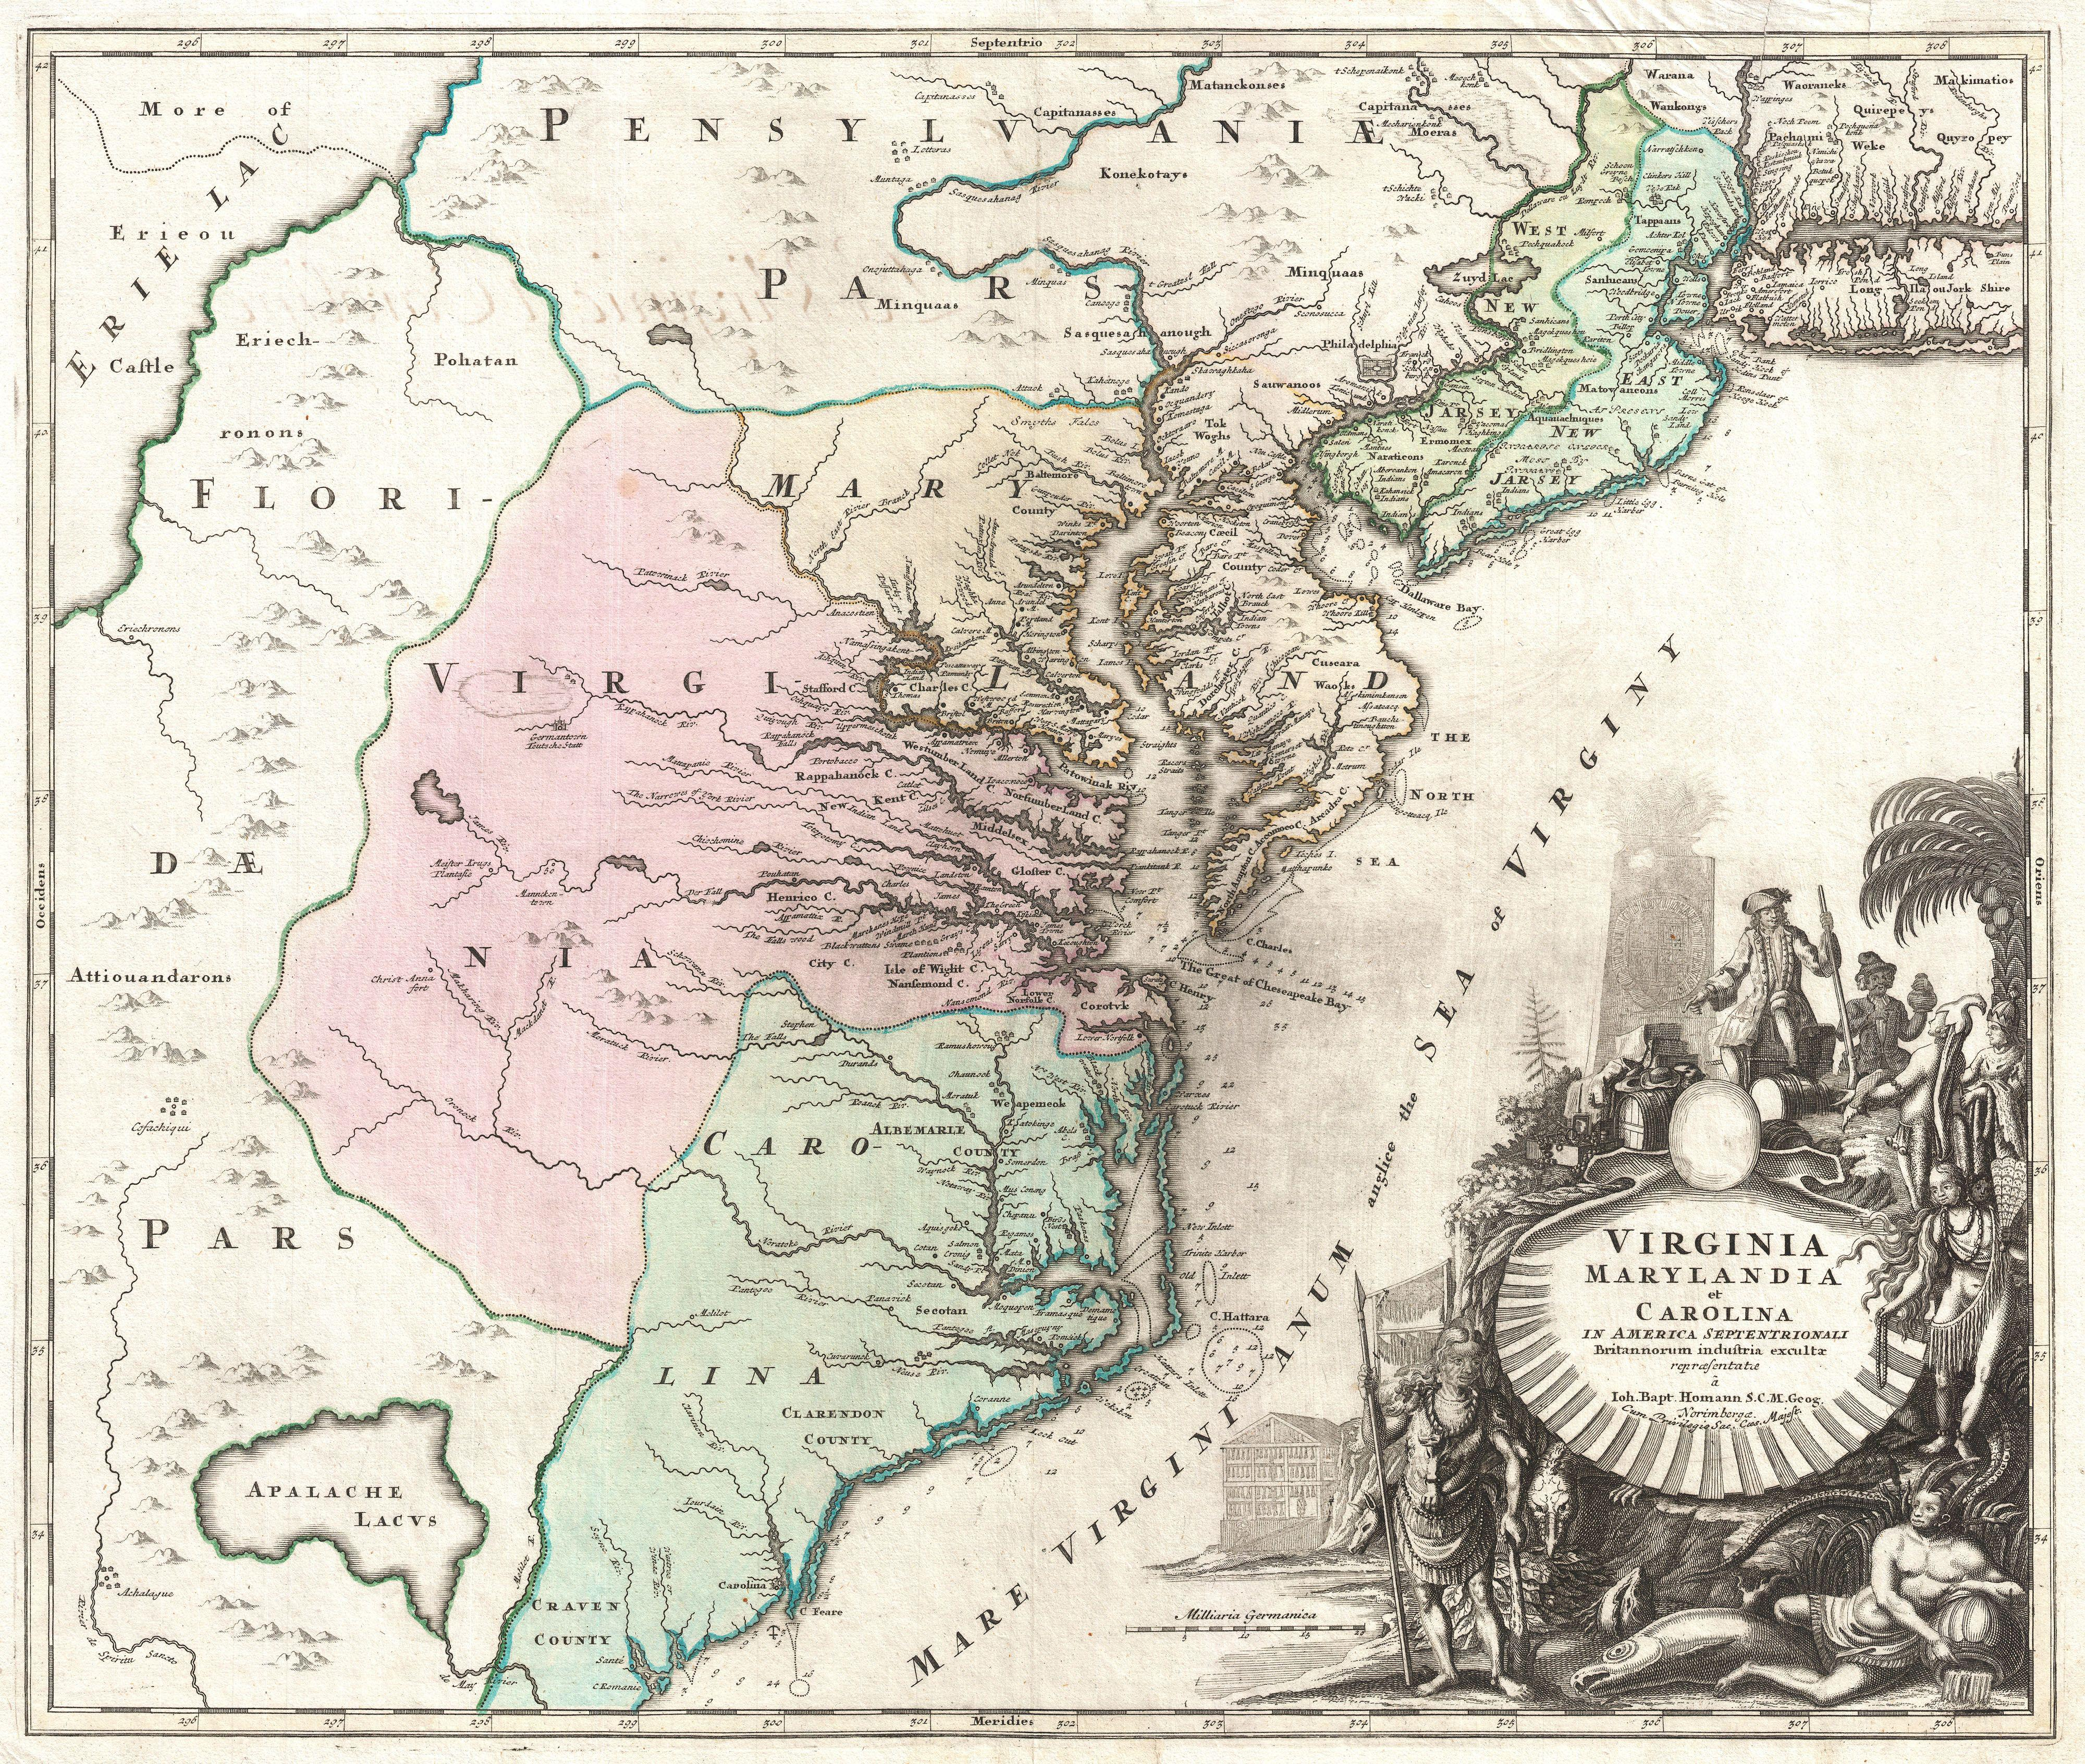 File:1715 Homann Map of Carolina, Virginia, Maryland and New Jersey -  Geographicus